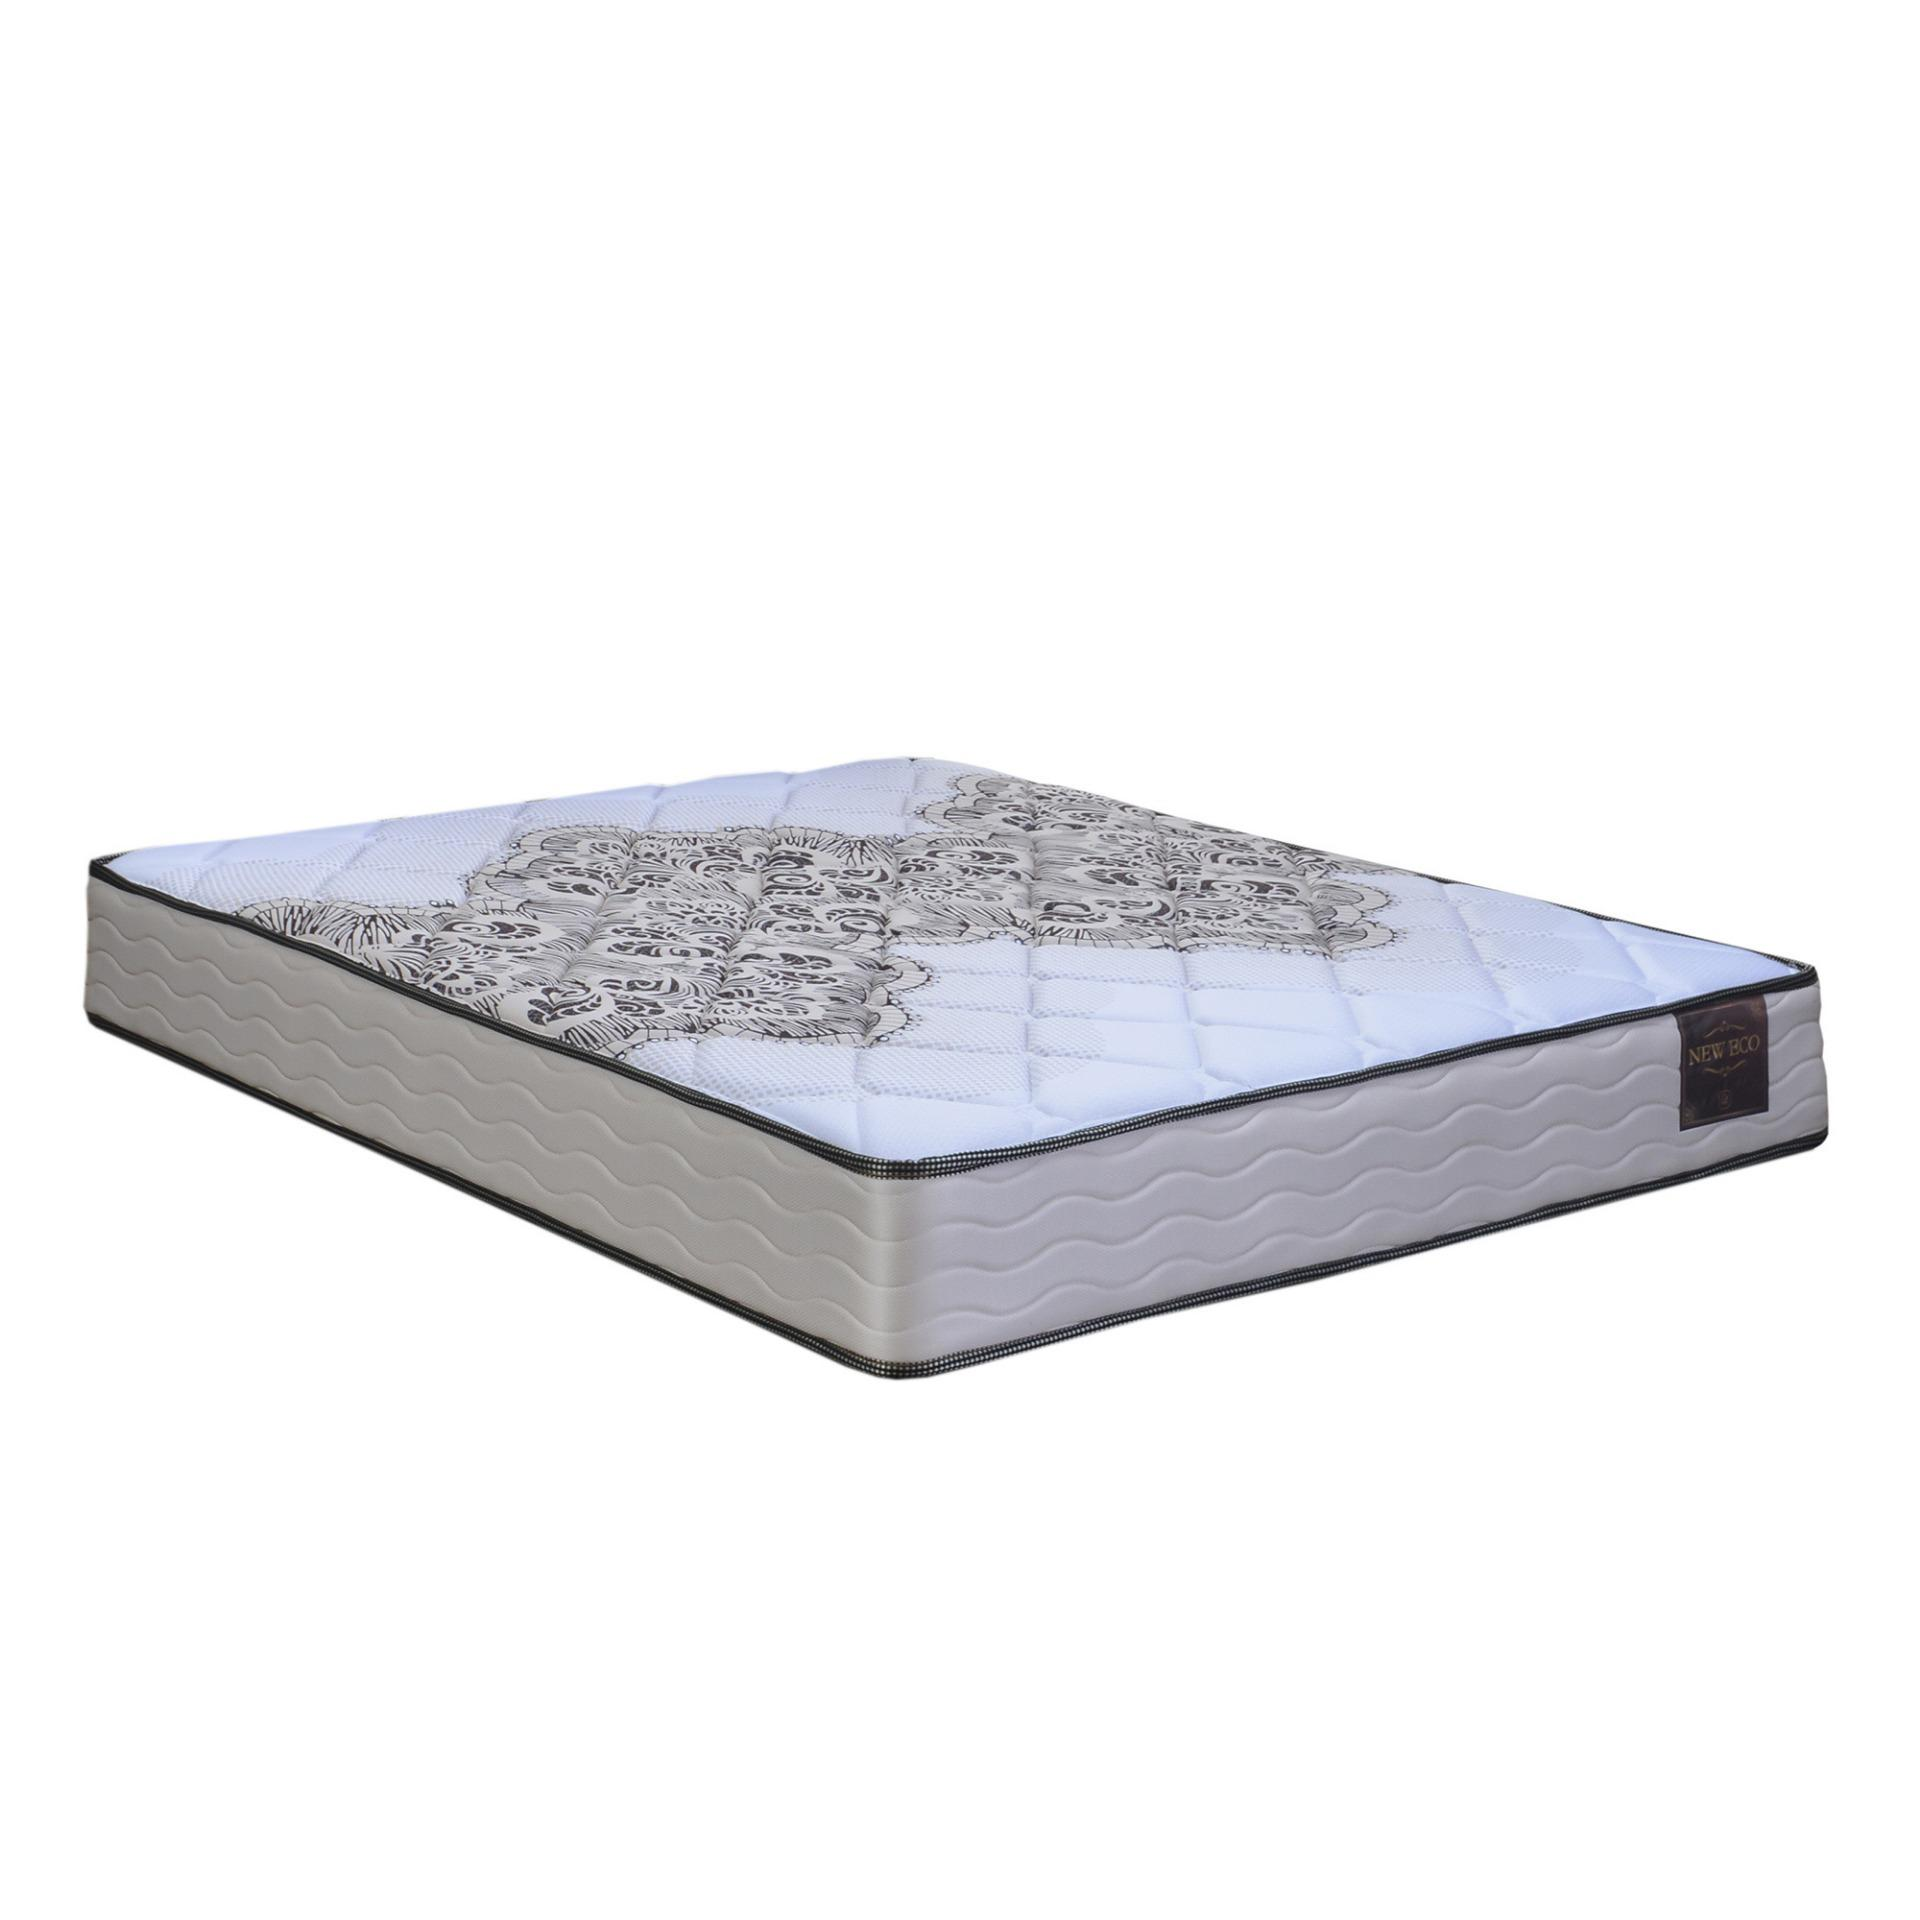 Airland New Eco 120 x 200 Mattress Only - Putih - Khusus Jabodetabek